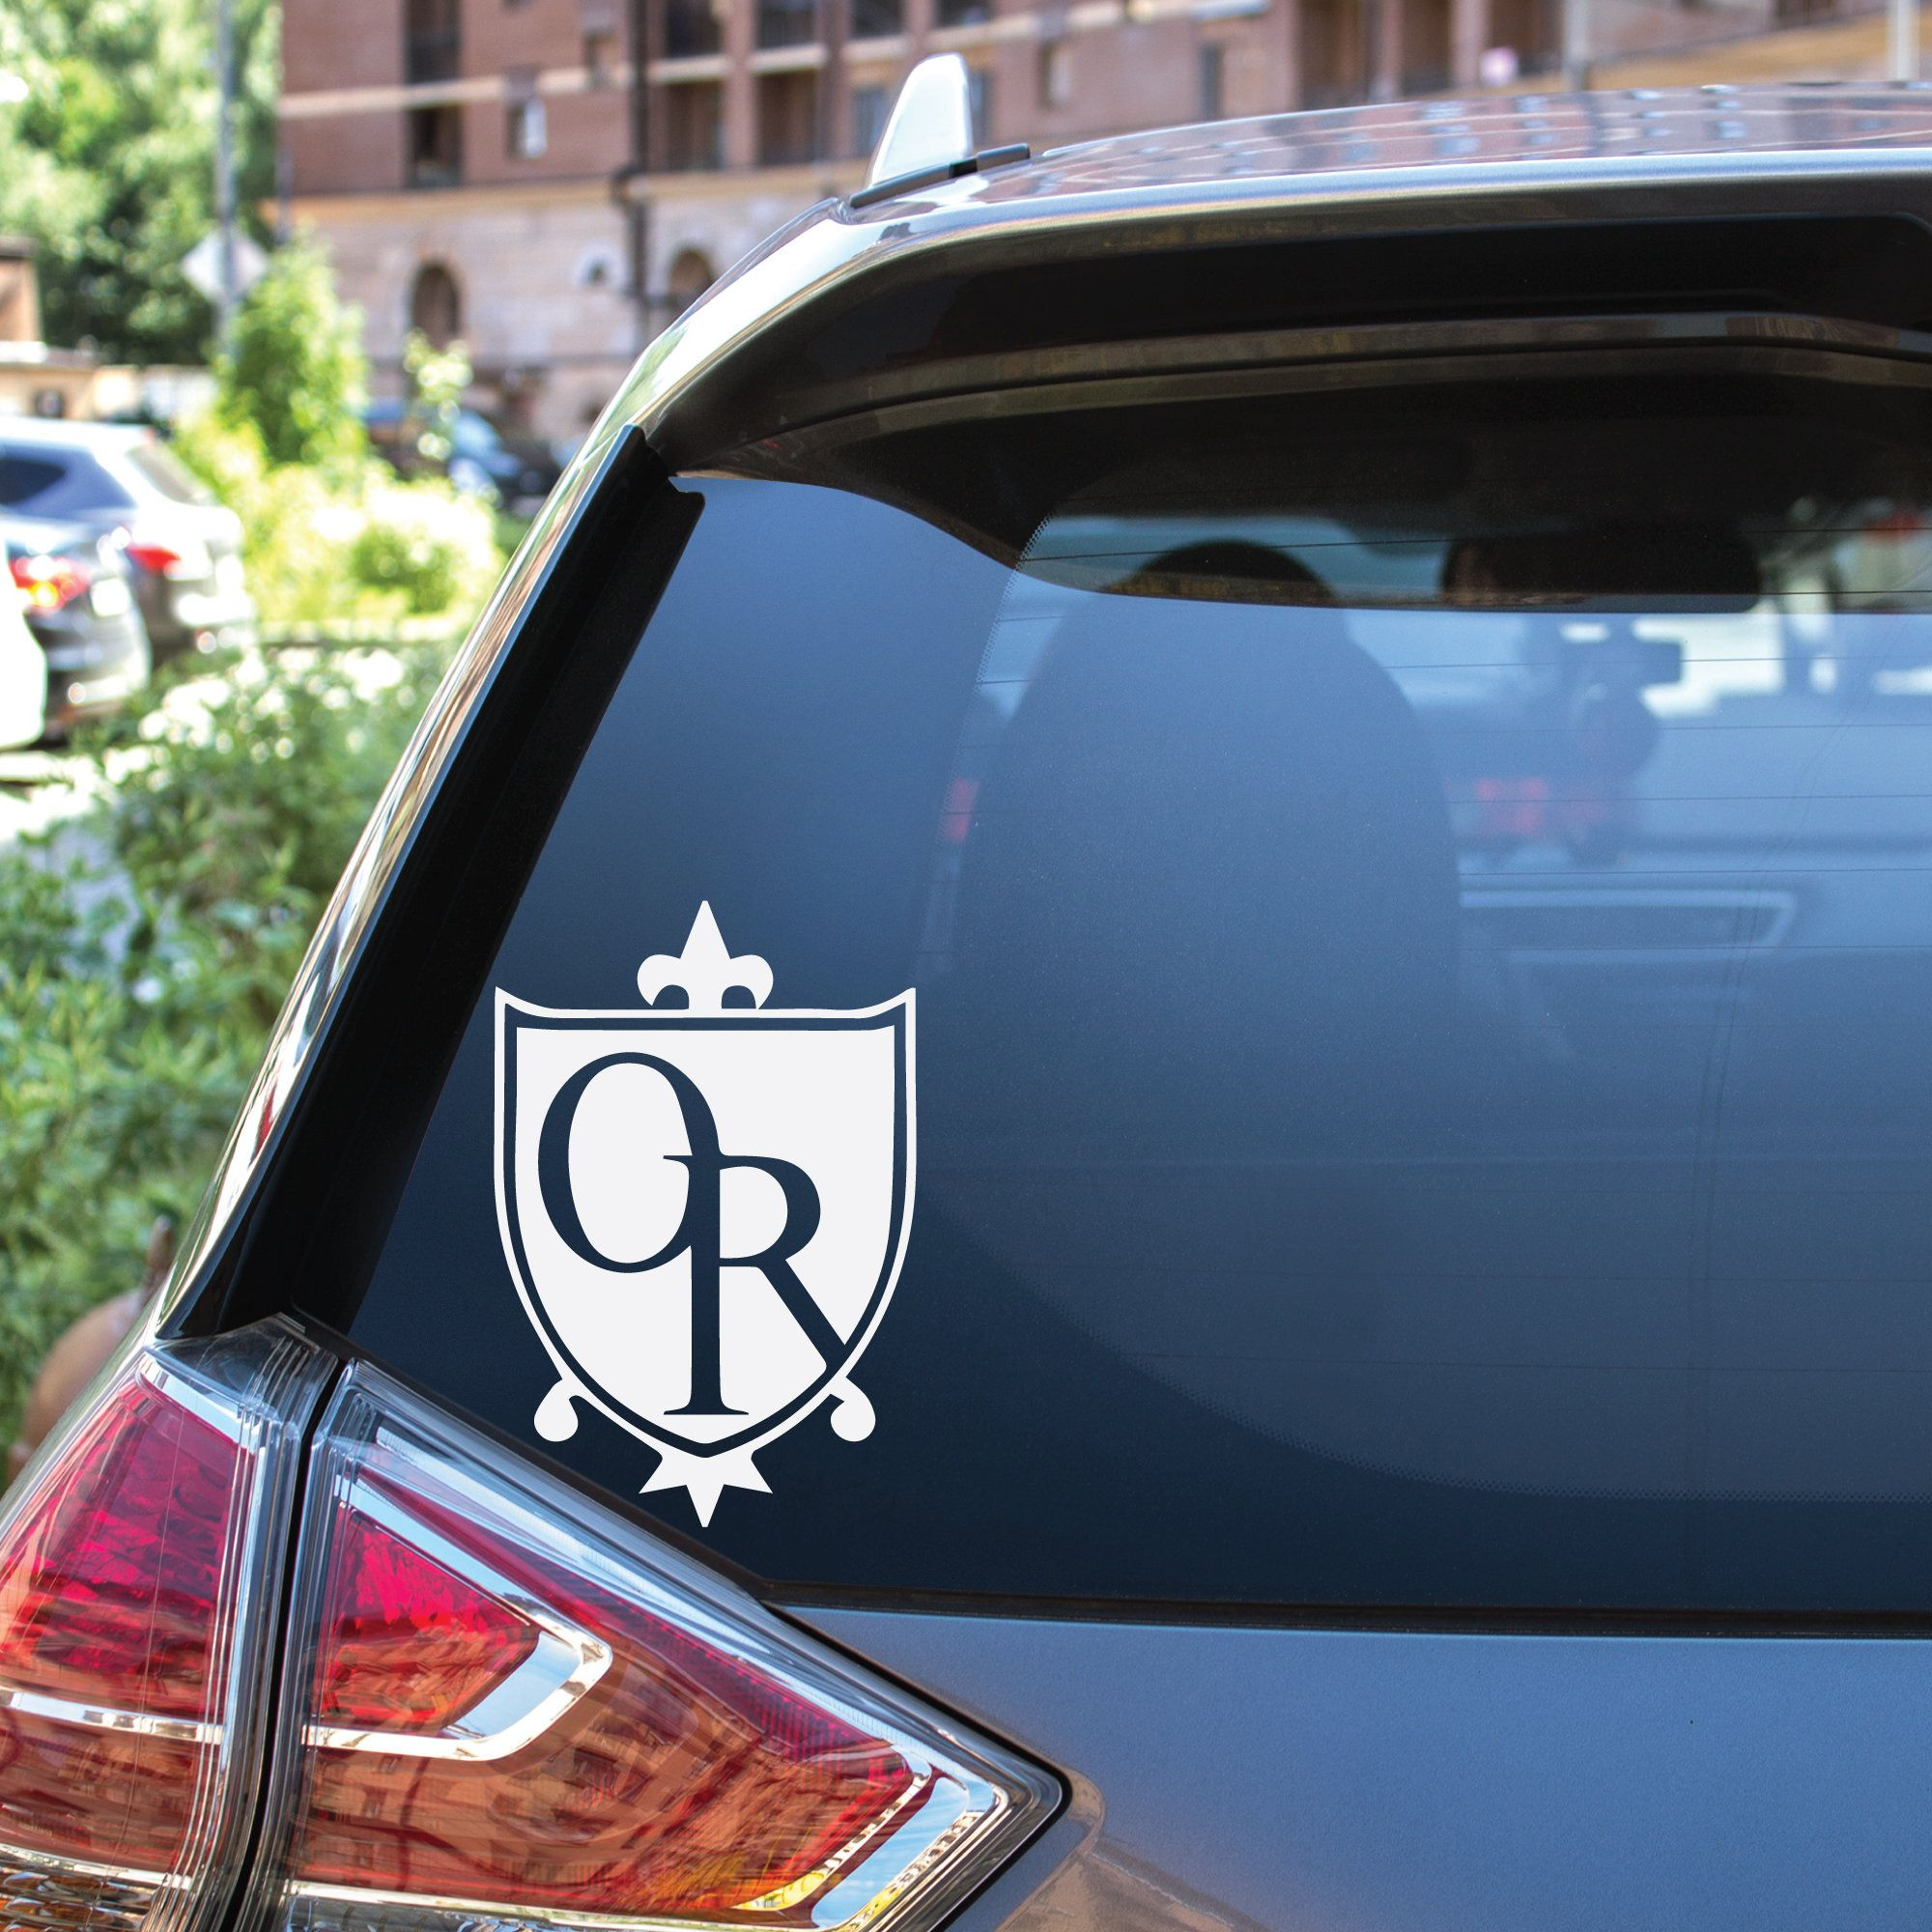 Ouran Host Club Crest Vinyl Decal Sticker By Octopuscrimedesign On Etsy Car Decal Tumbler Decal Laptop Decal Vinyl S Vinyl Decals Vinyl Decal Stickers Vinyl [ 2000 x 2000 Pixel ]